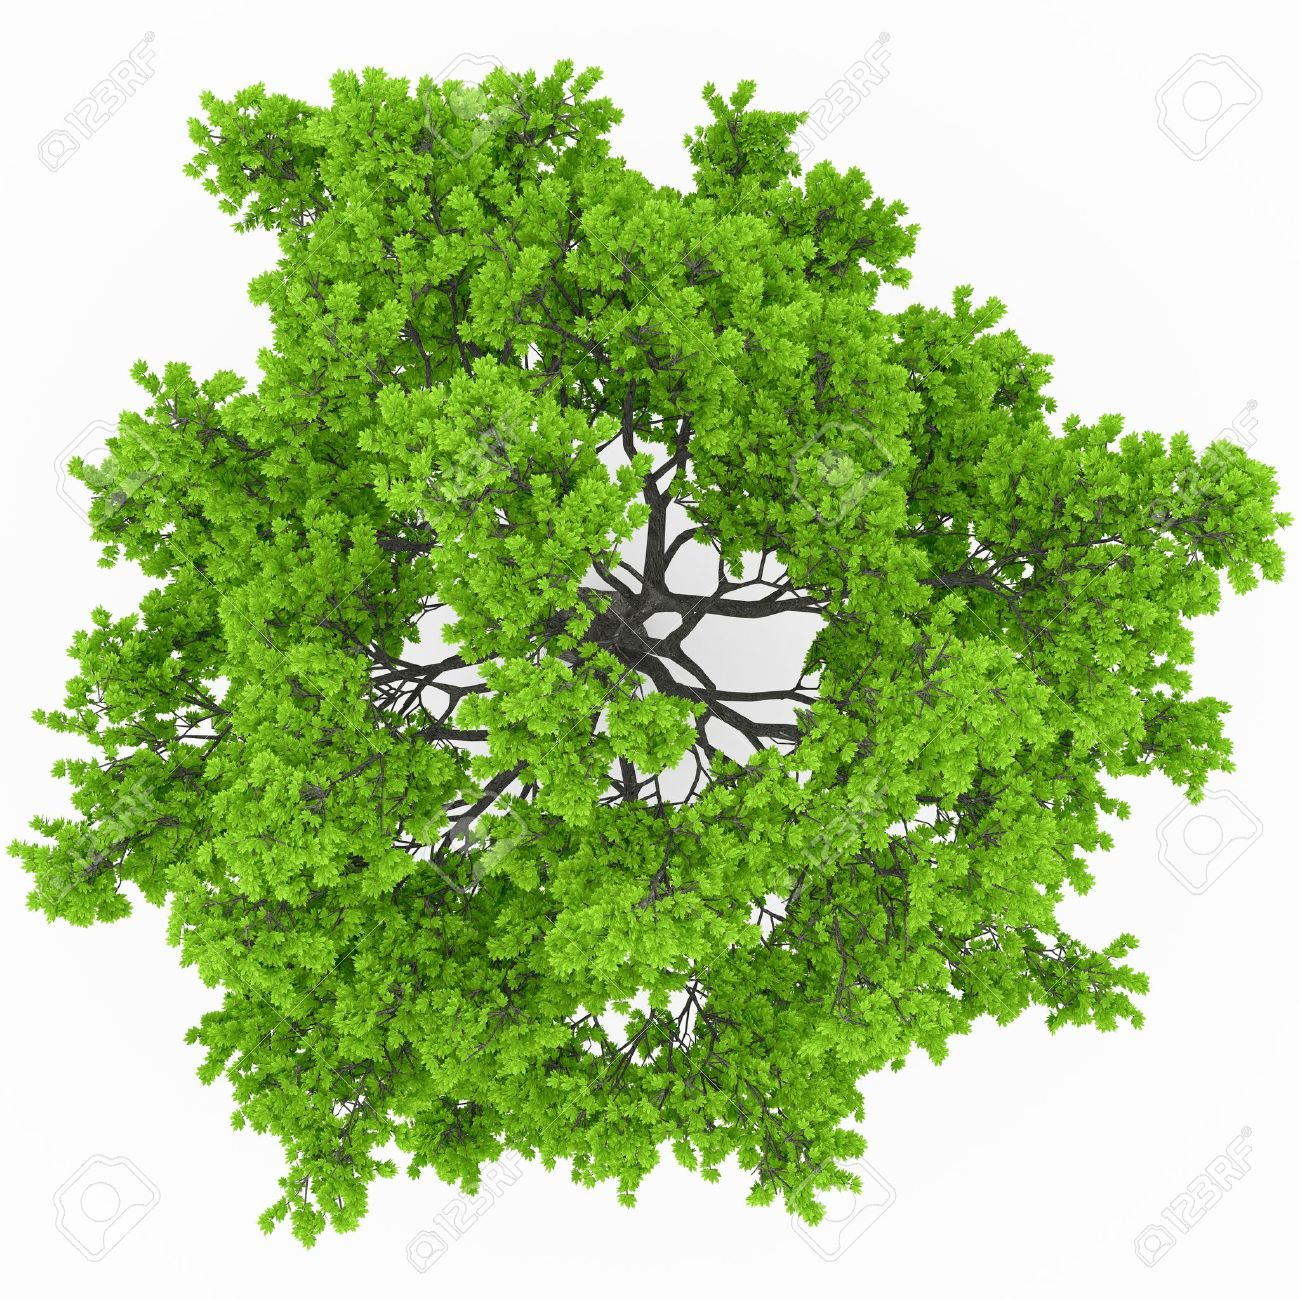 tree top view stock photo picture and royalty free image image